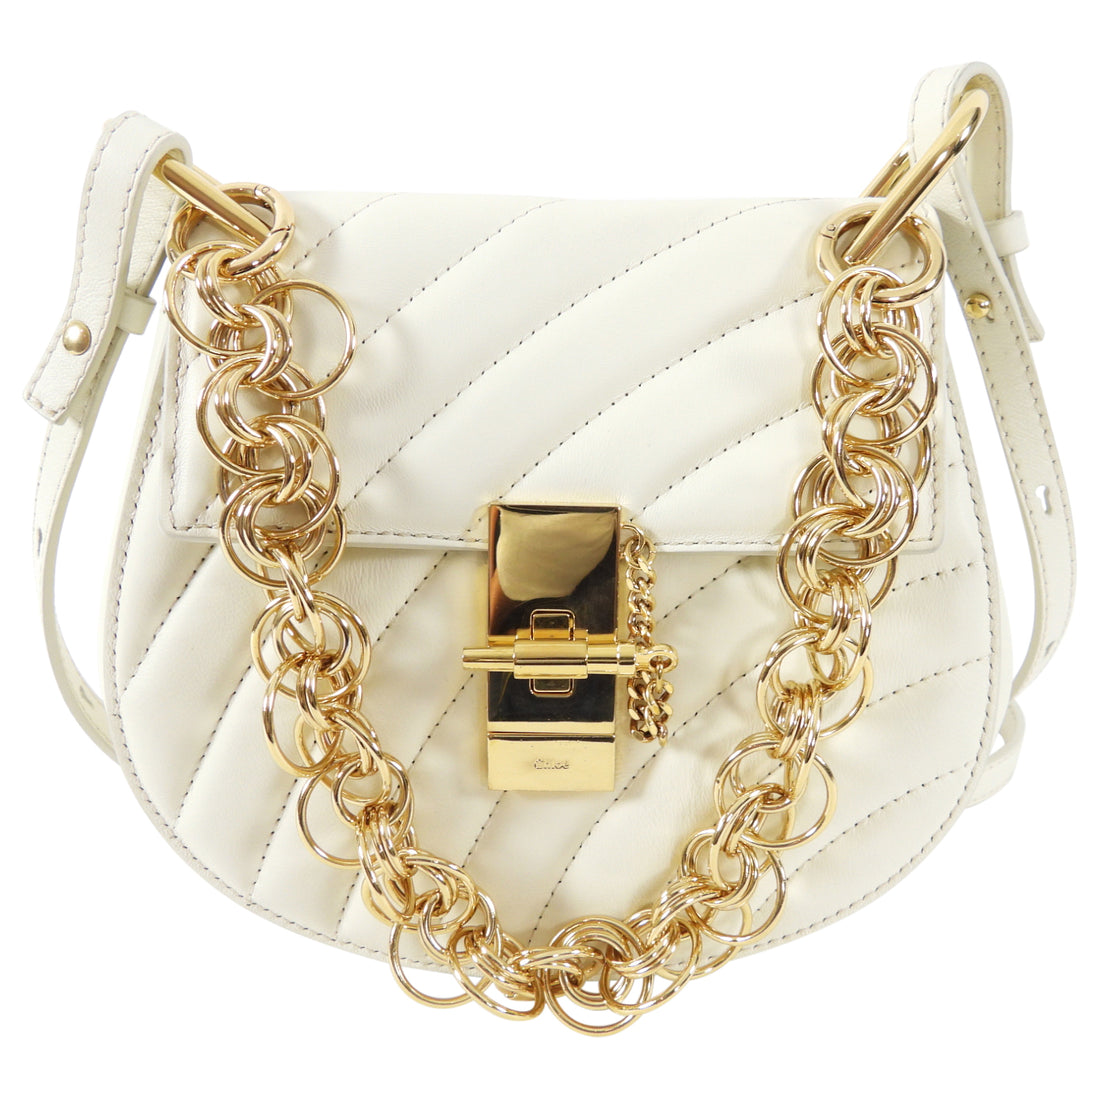 Chloe Drew Bijoux Small Ivory Quilted Chain Crossbody Bag